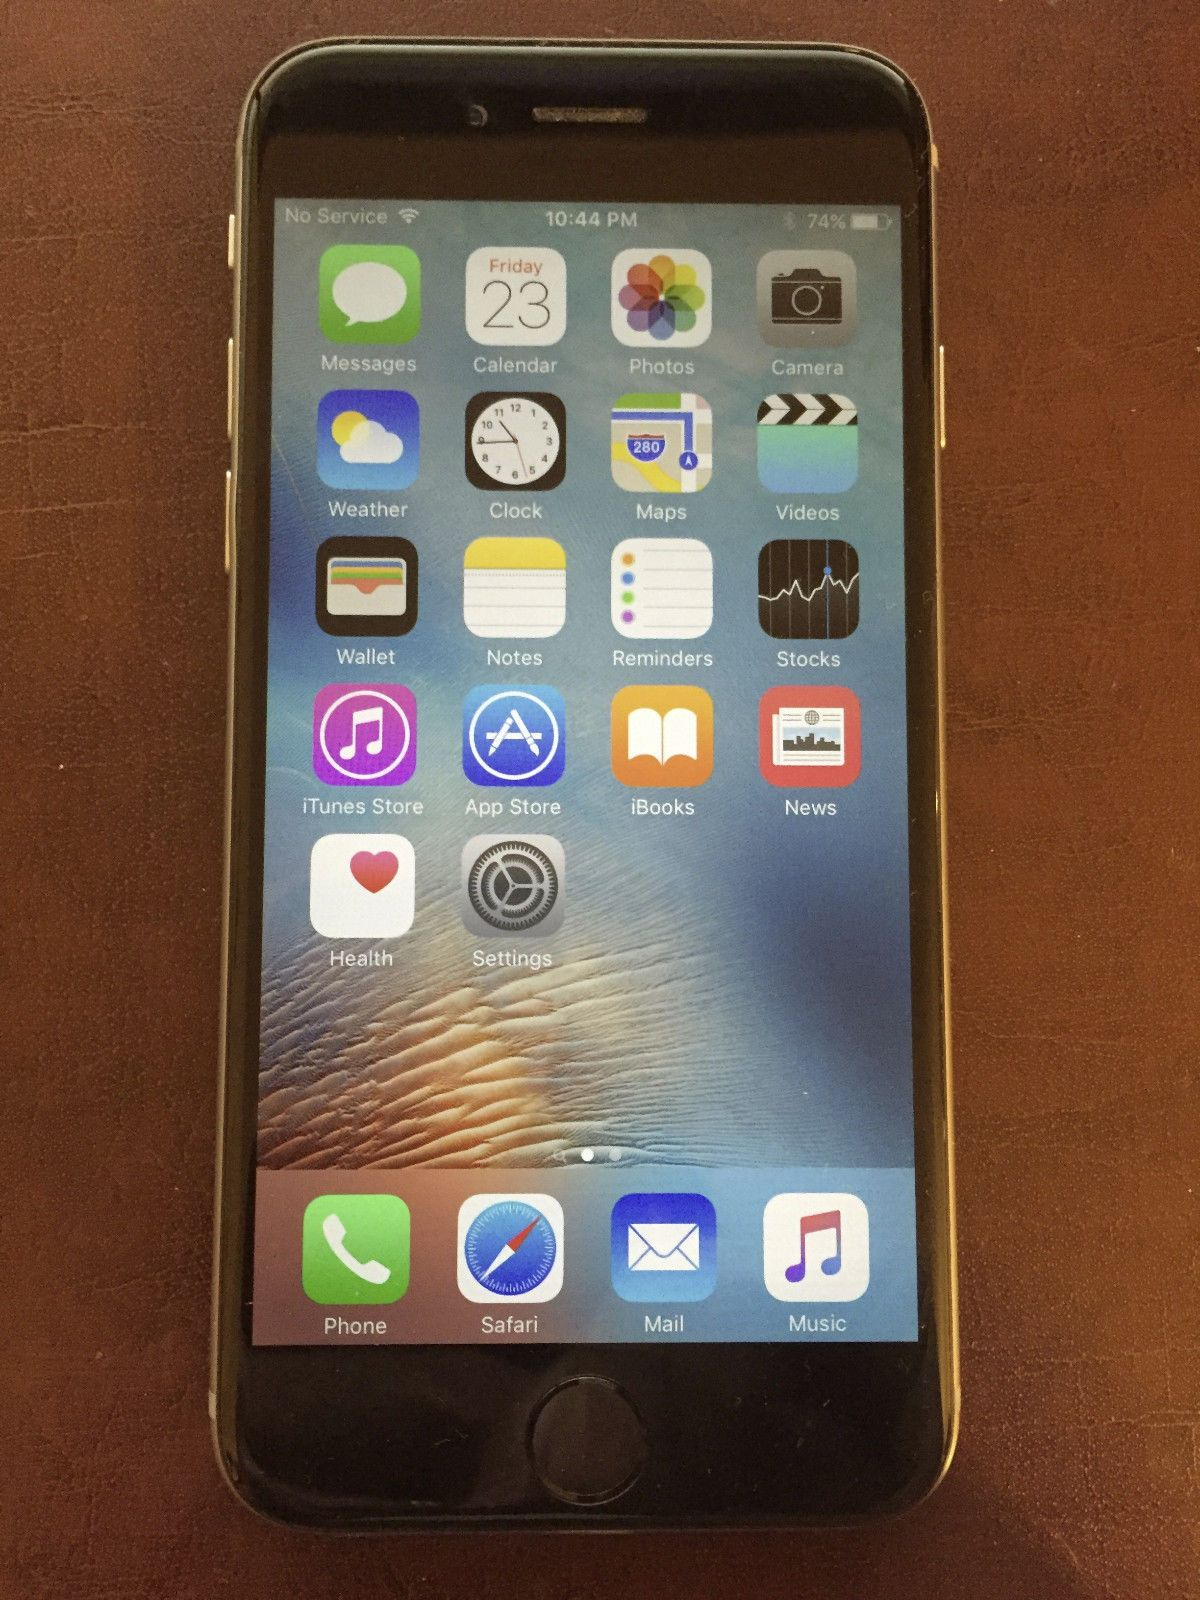 Apple Iphone 6 16gb Space Gray Black At T Smartphone Mg4n2ll A Ebay Apple Iphone 6 Iphone Apple Iphone